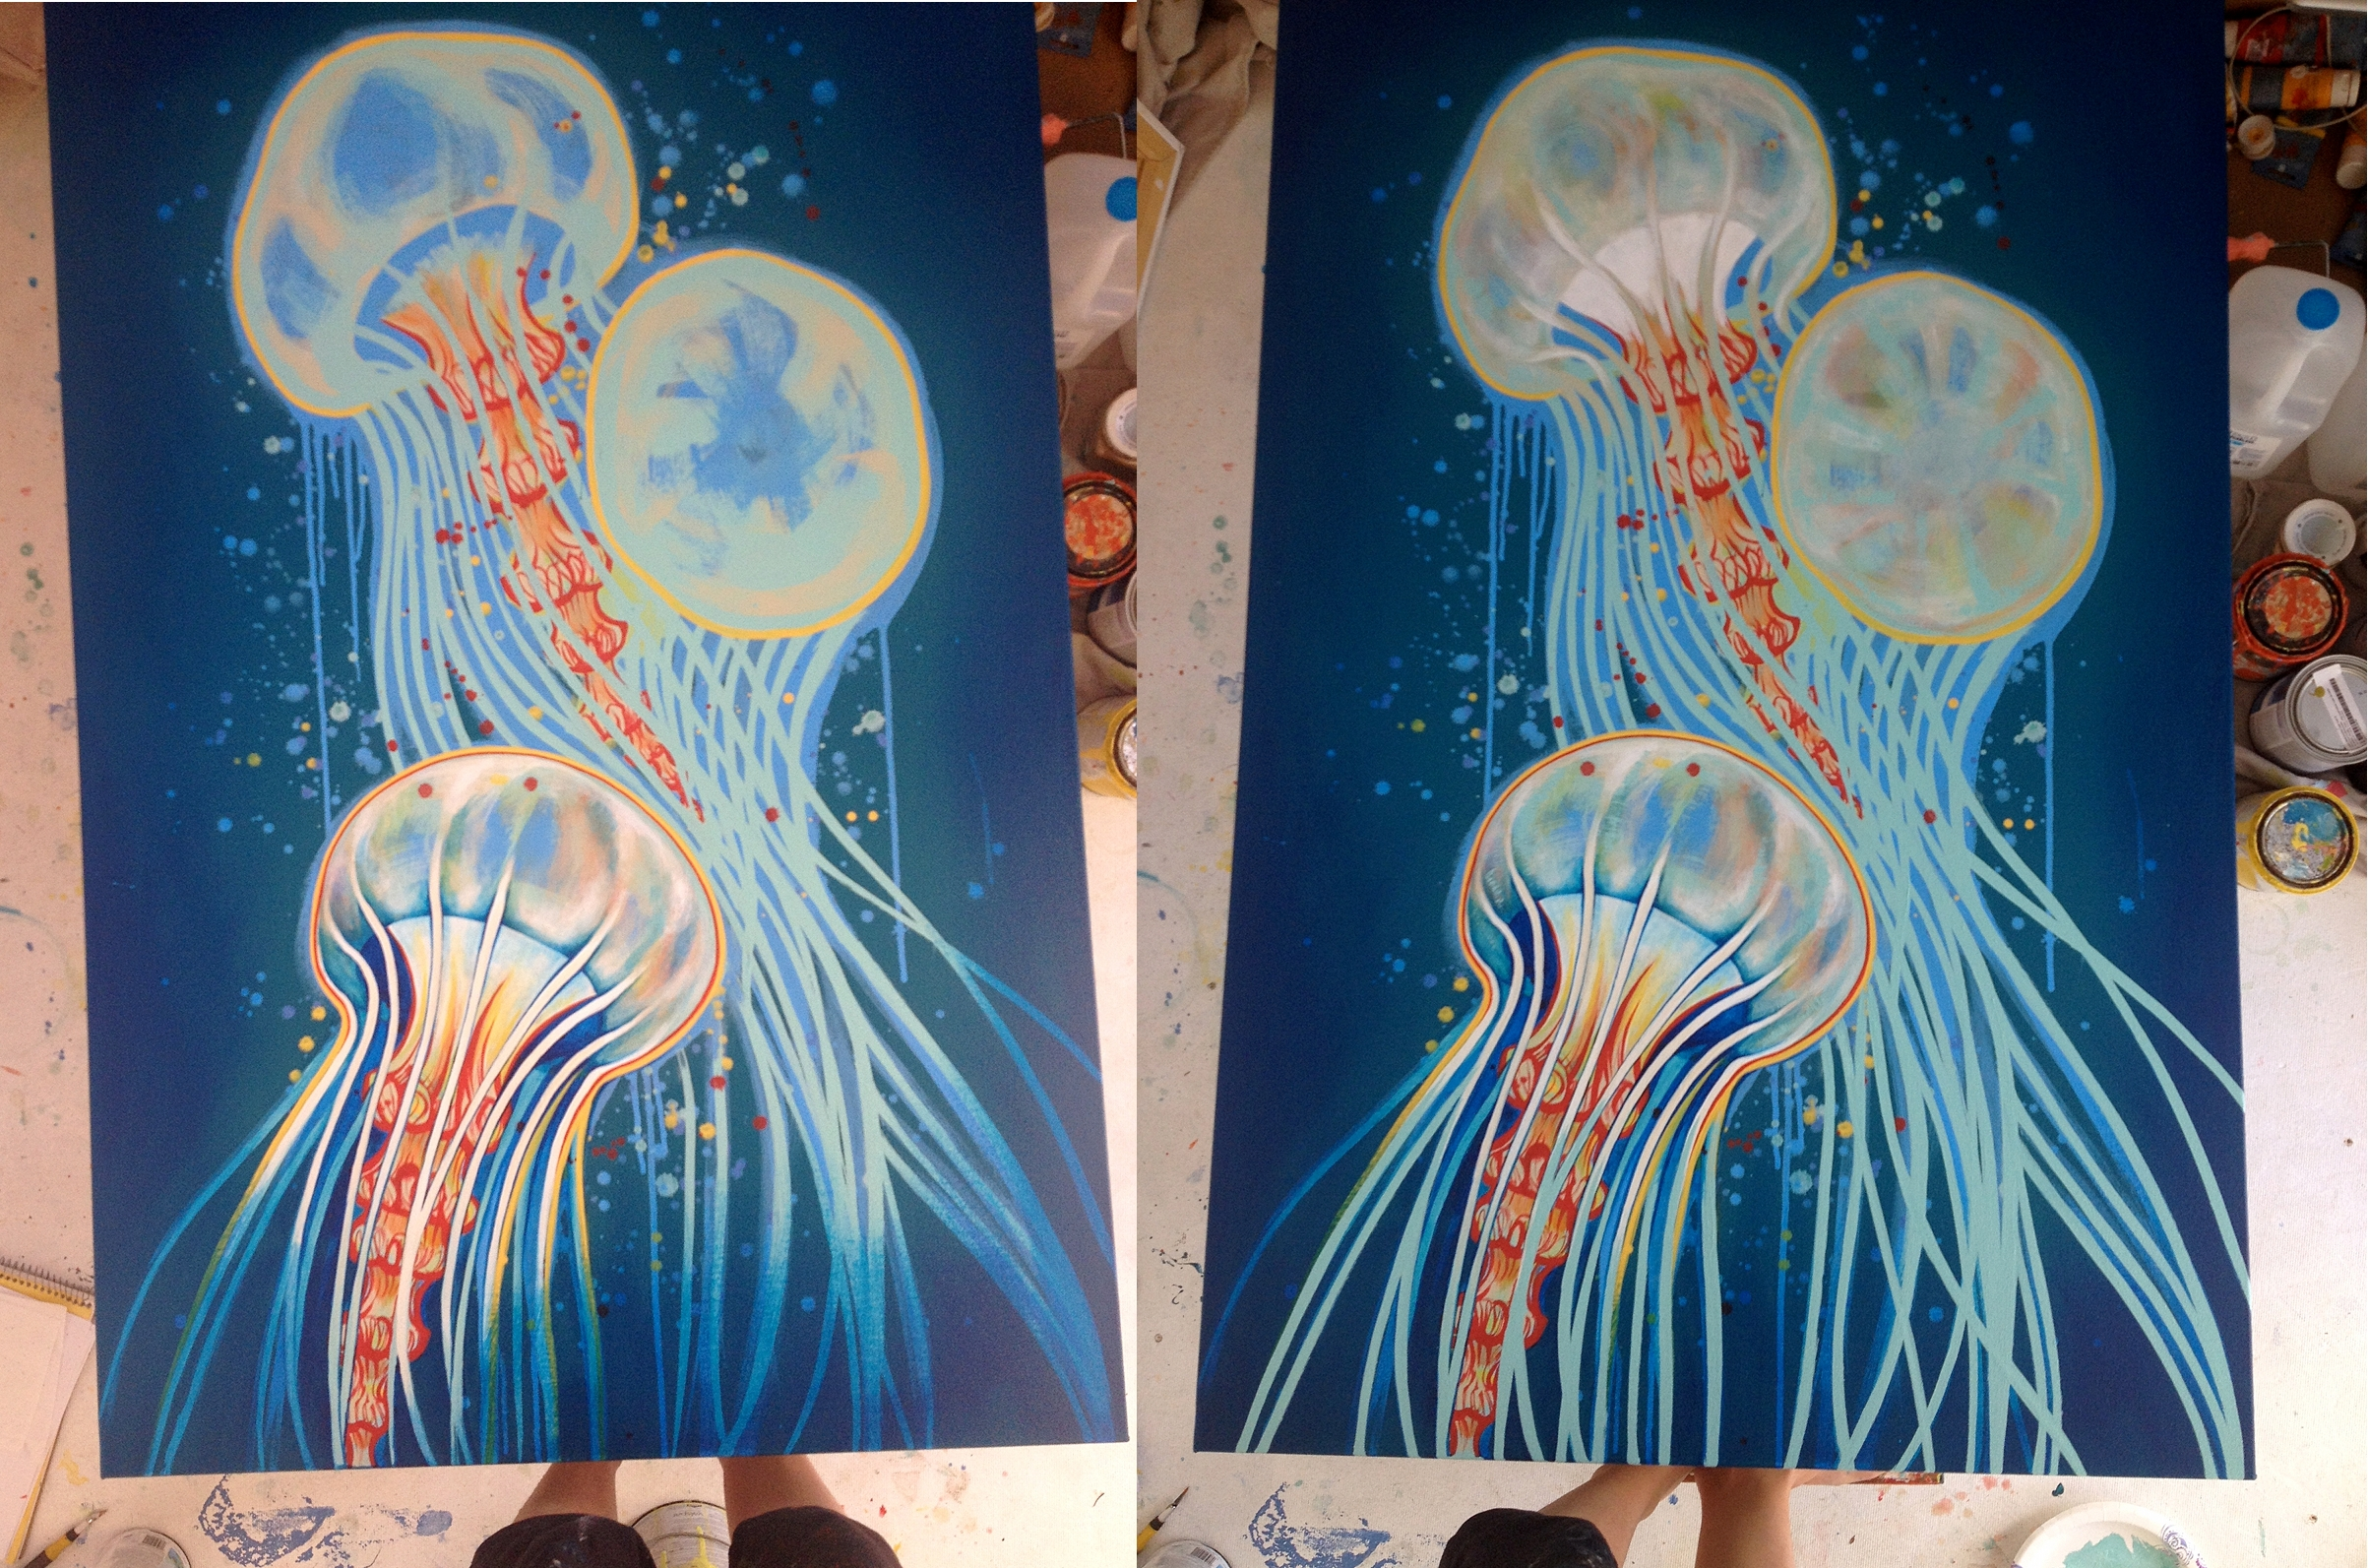 Worked on bottom jelly in detail, then used it as a model to complete the other two.